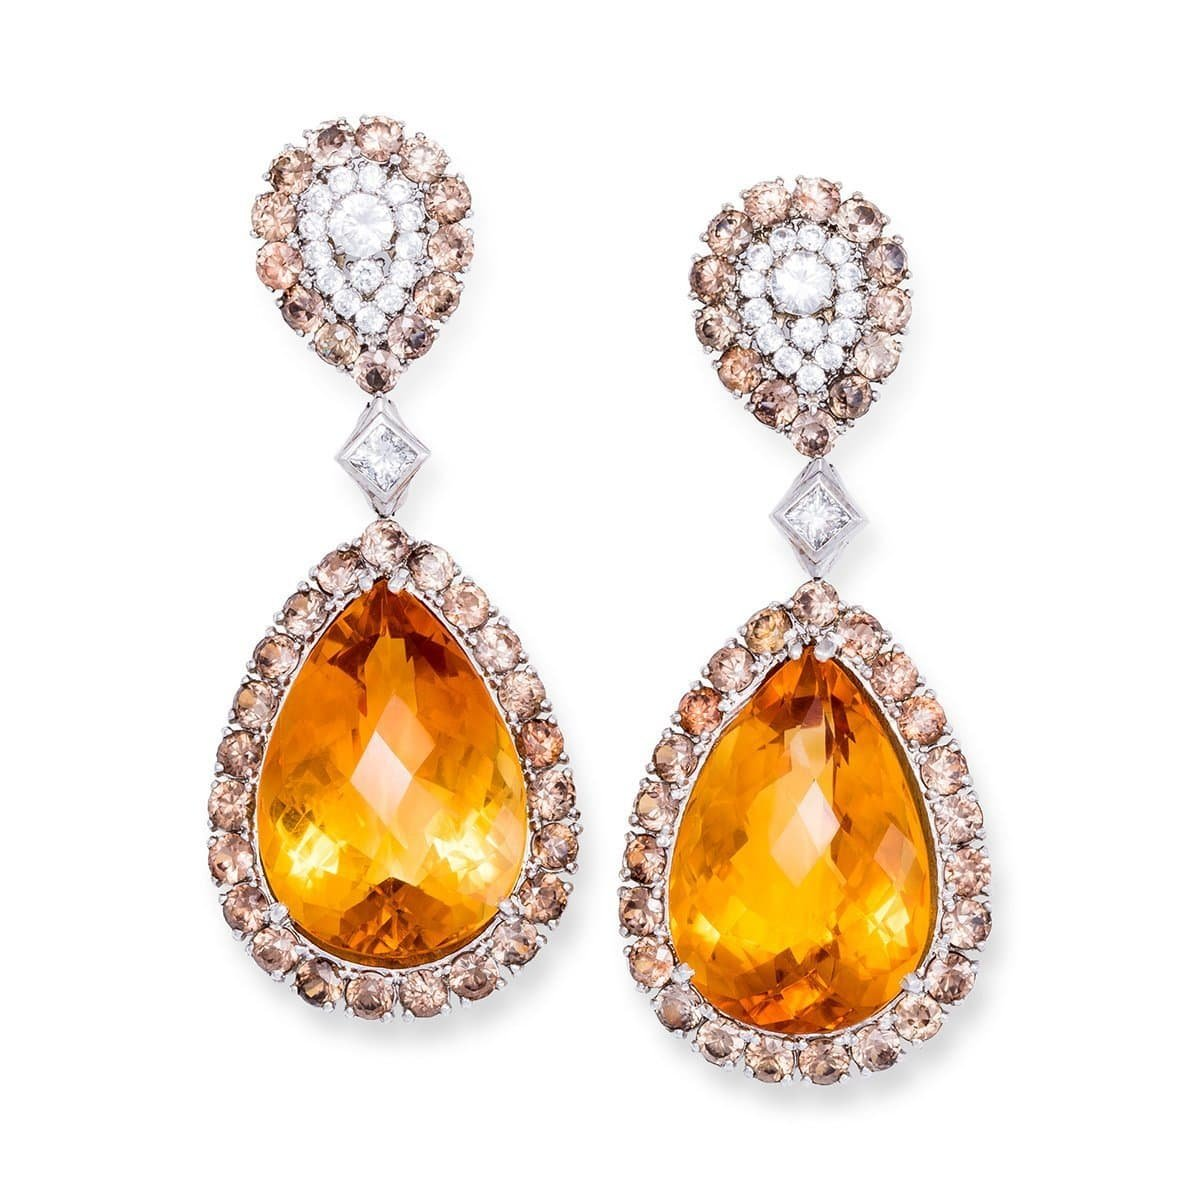 White Gold, Citrine & Diamond Haute Bijoux Drop Earring